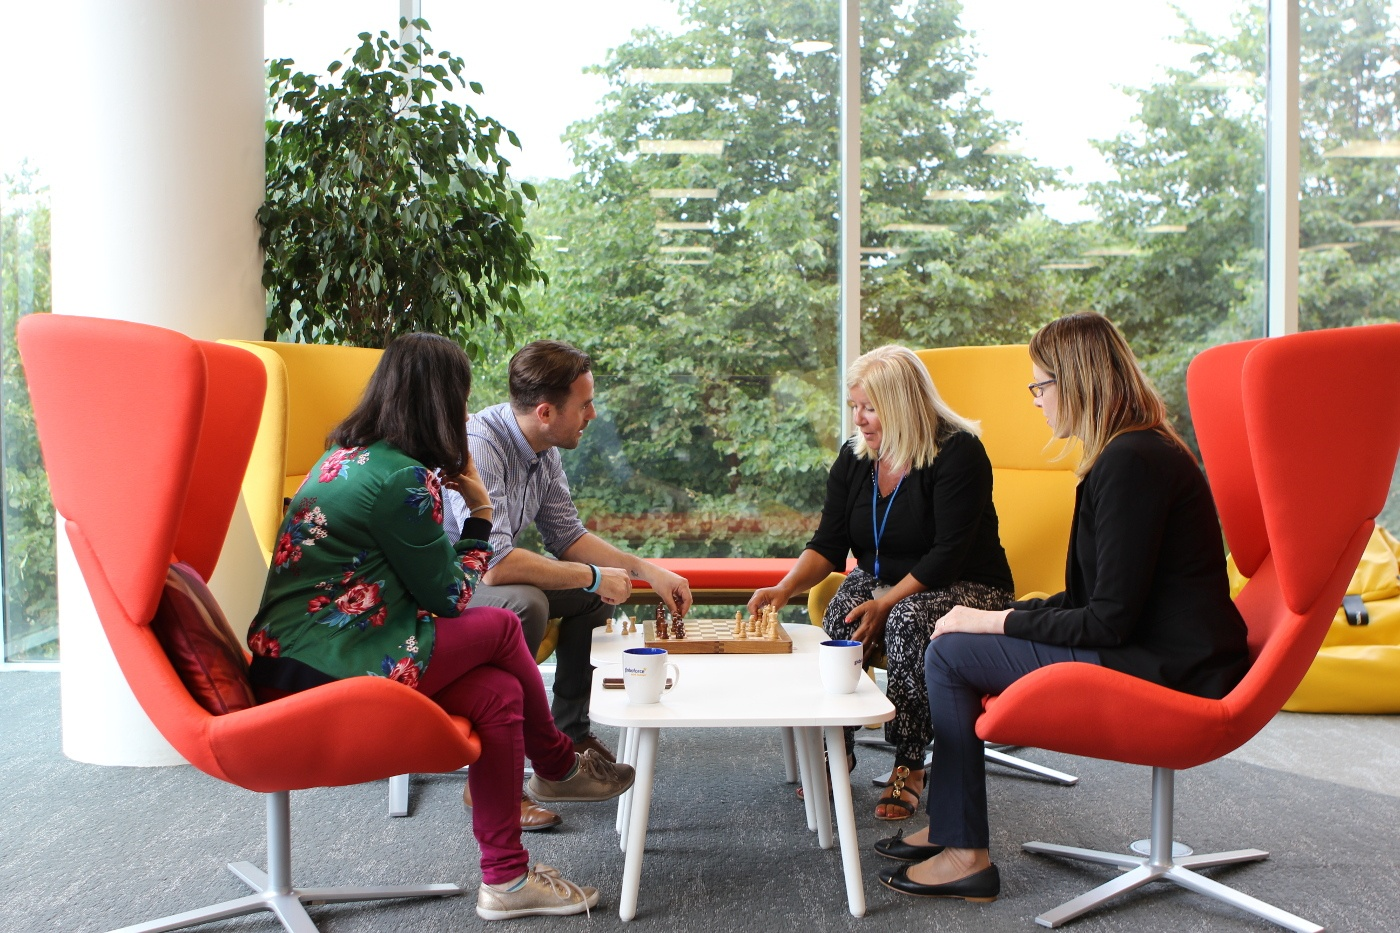 Four Globoforce employees sitting in colourful chairs playing chess